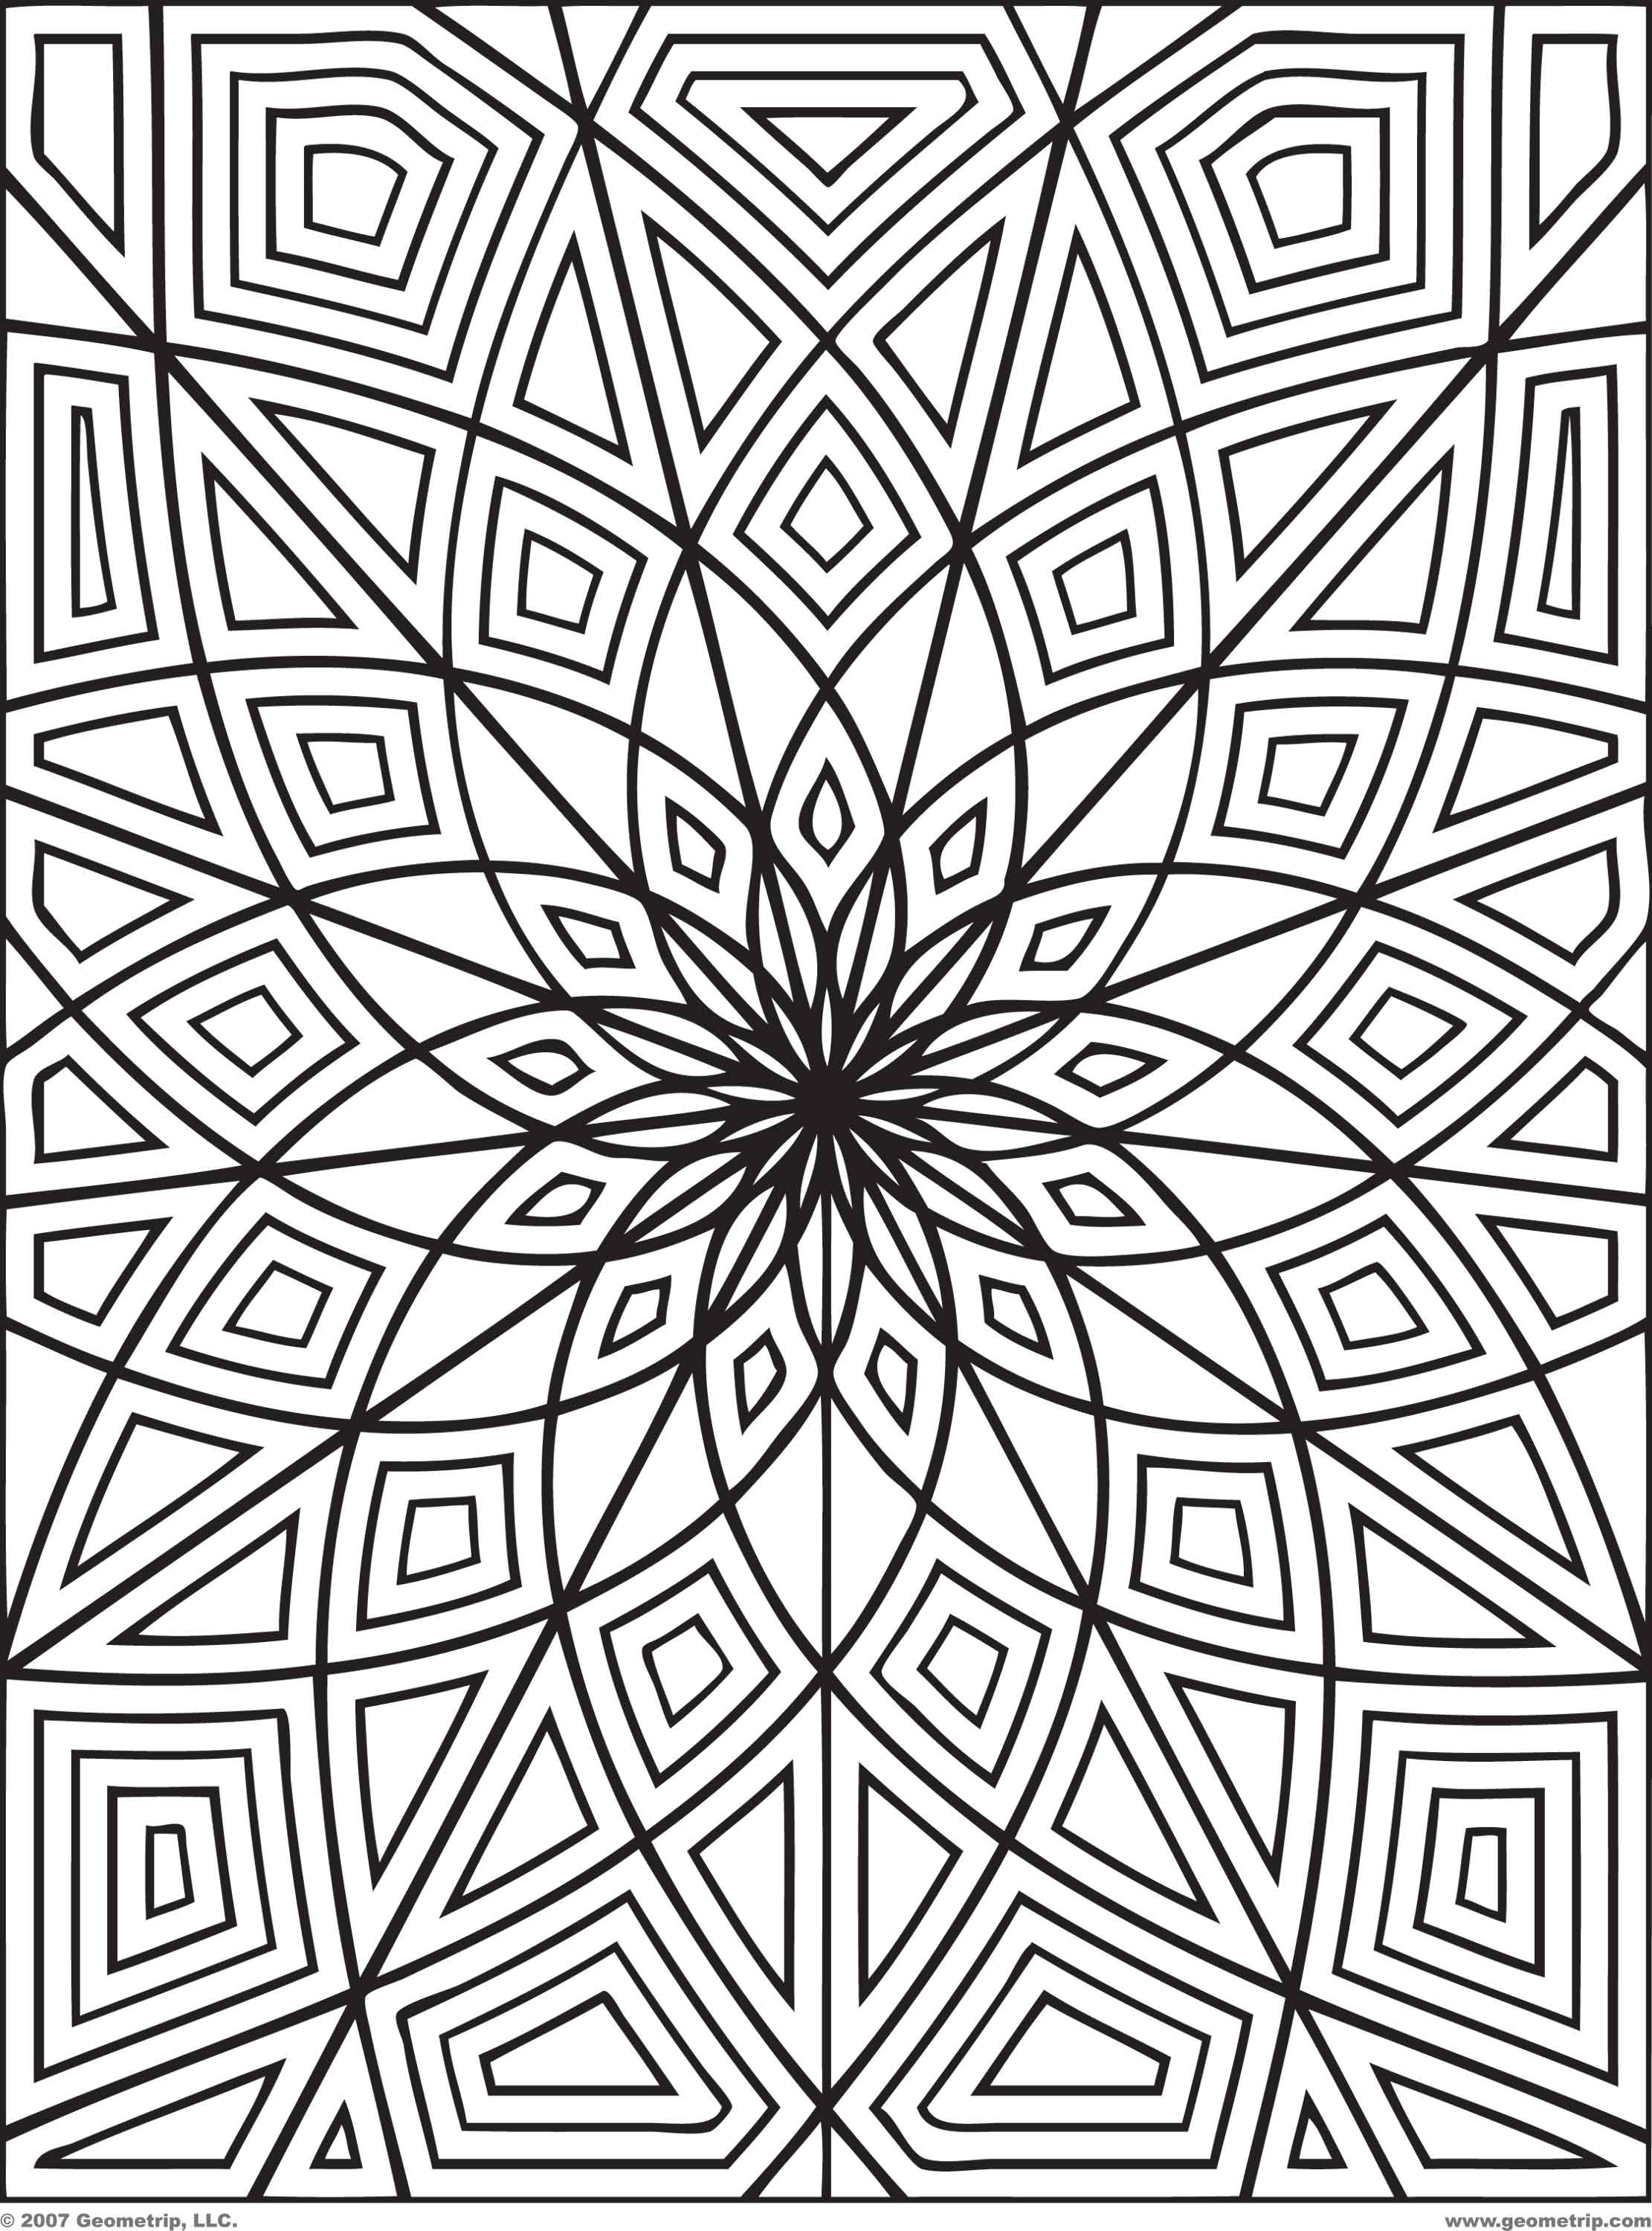 3d coloring pages - 3d Designs Coloring Books Pages For Adults Immv Visualdnsnet